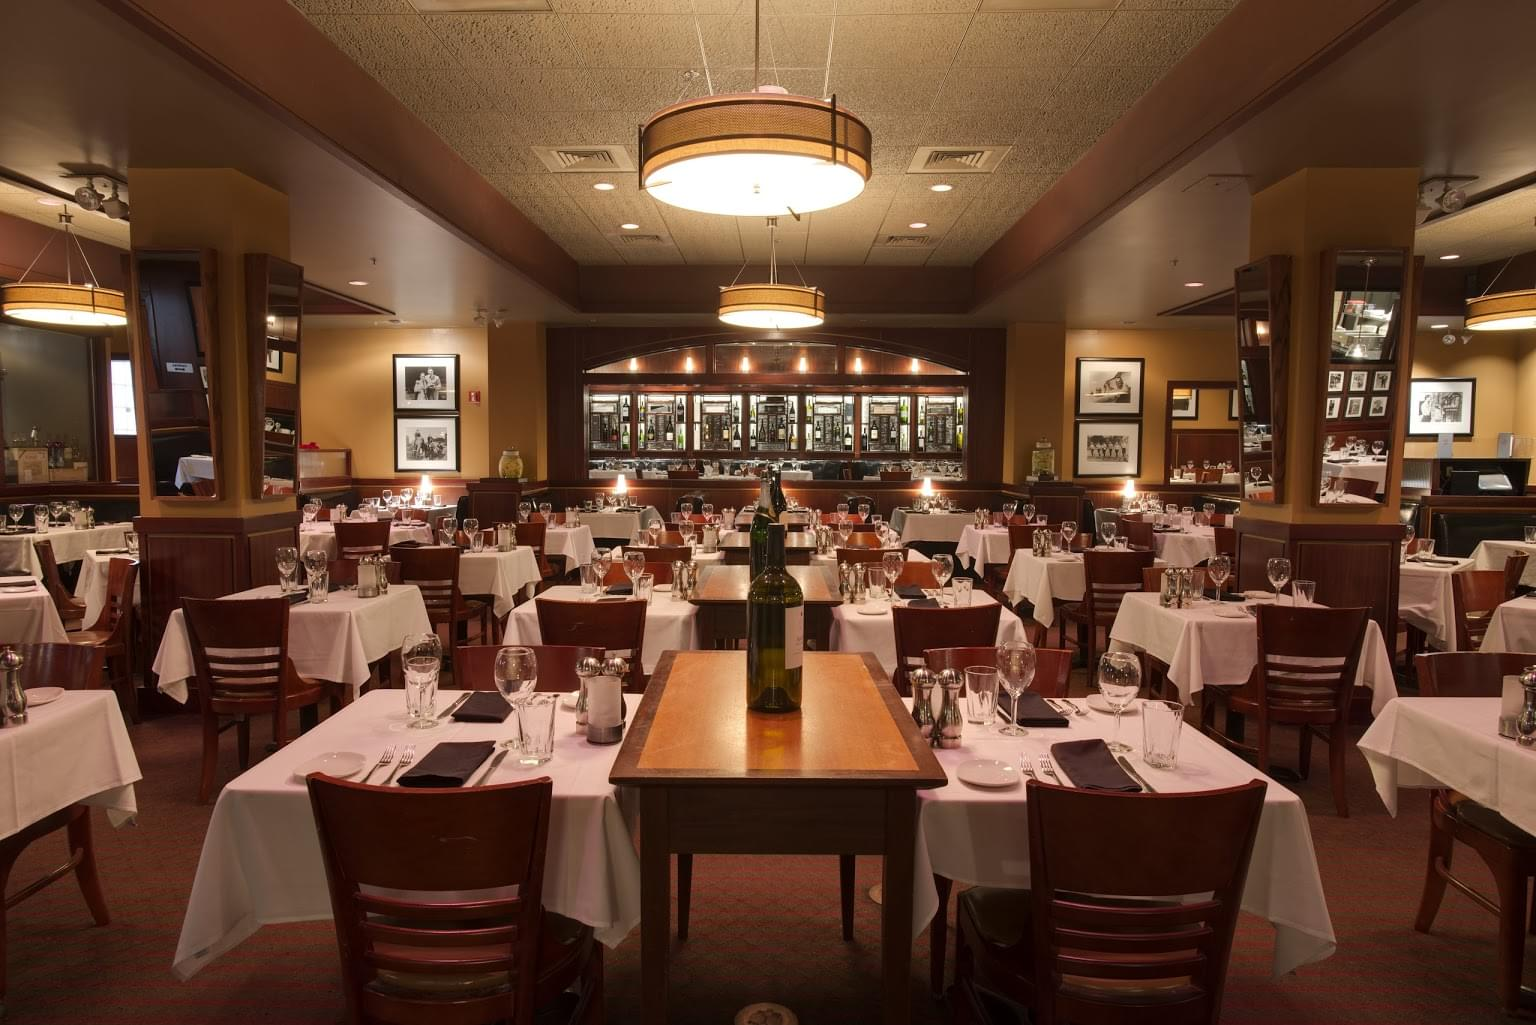 Raleigh Car Dealerships >> Sullivan's Steakhouse - Raleigh, NC - See-Inside Steak House Restauarant - Google Business View ...